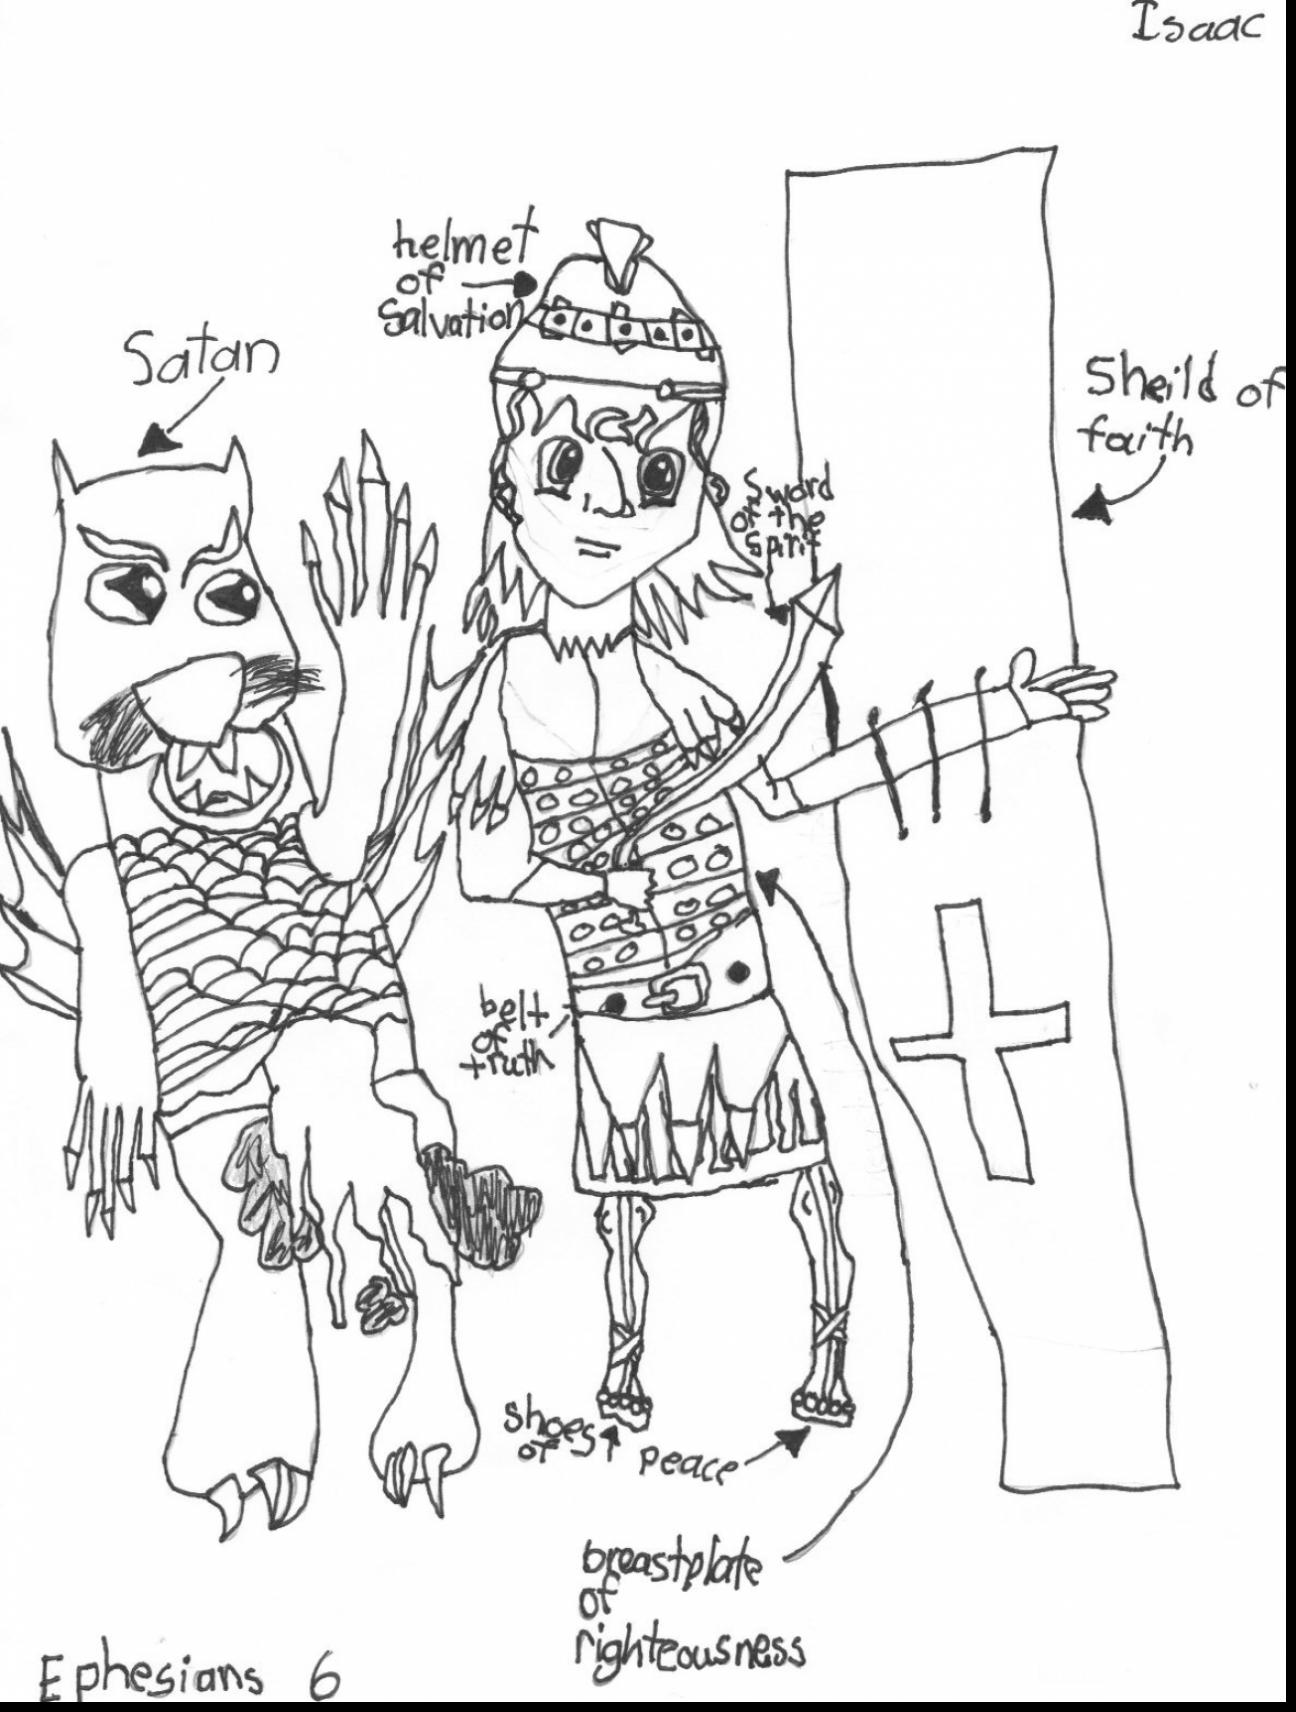 armor of god coloring pages armor of god coloring pages coloring home god of coloring pages armor